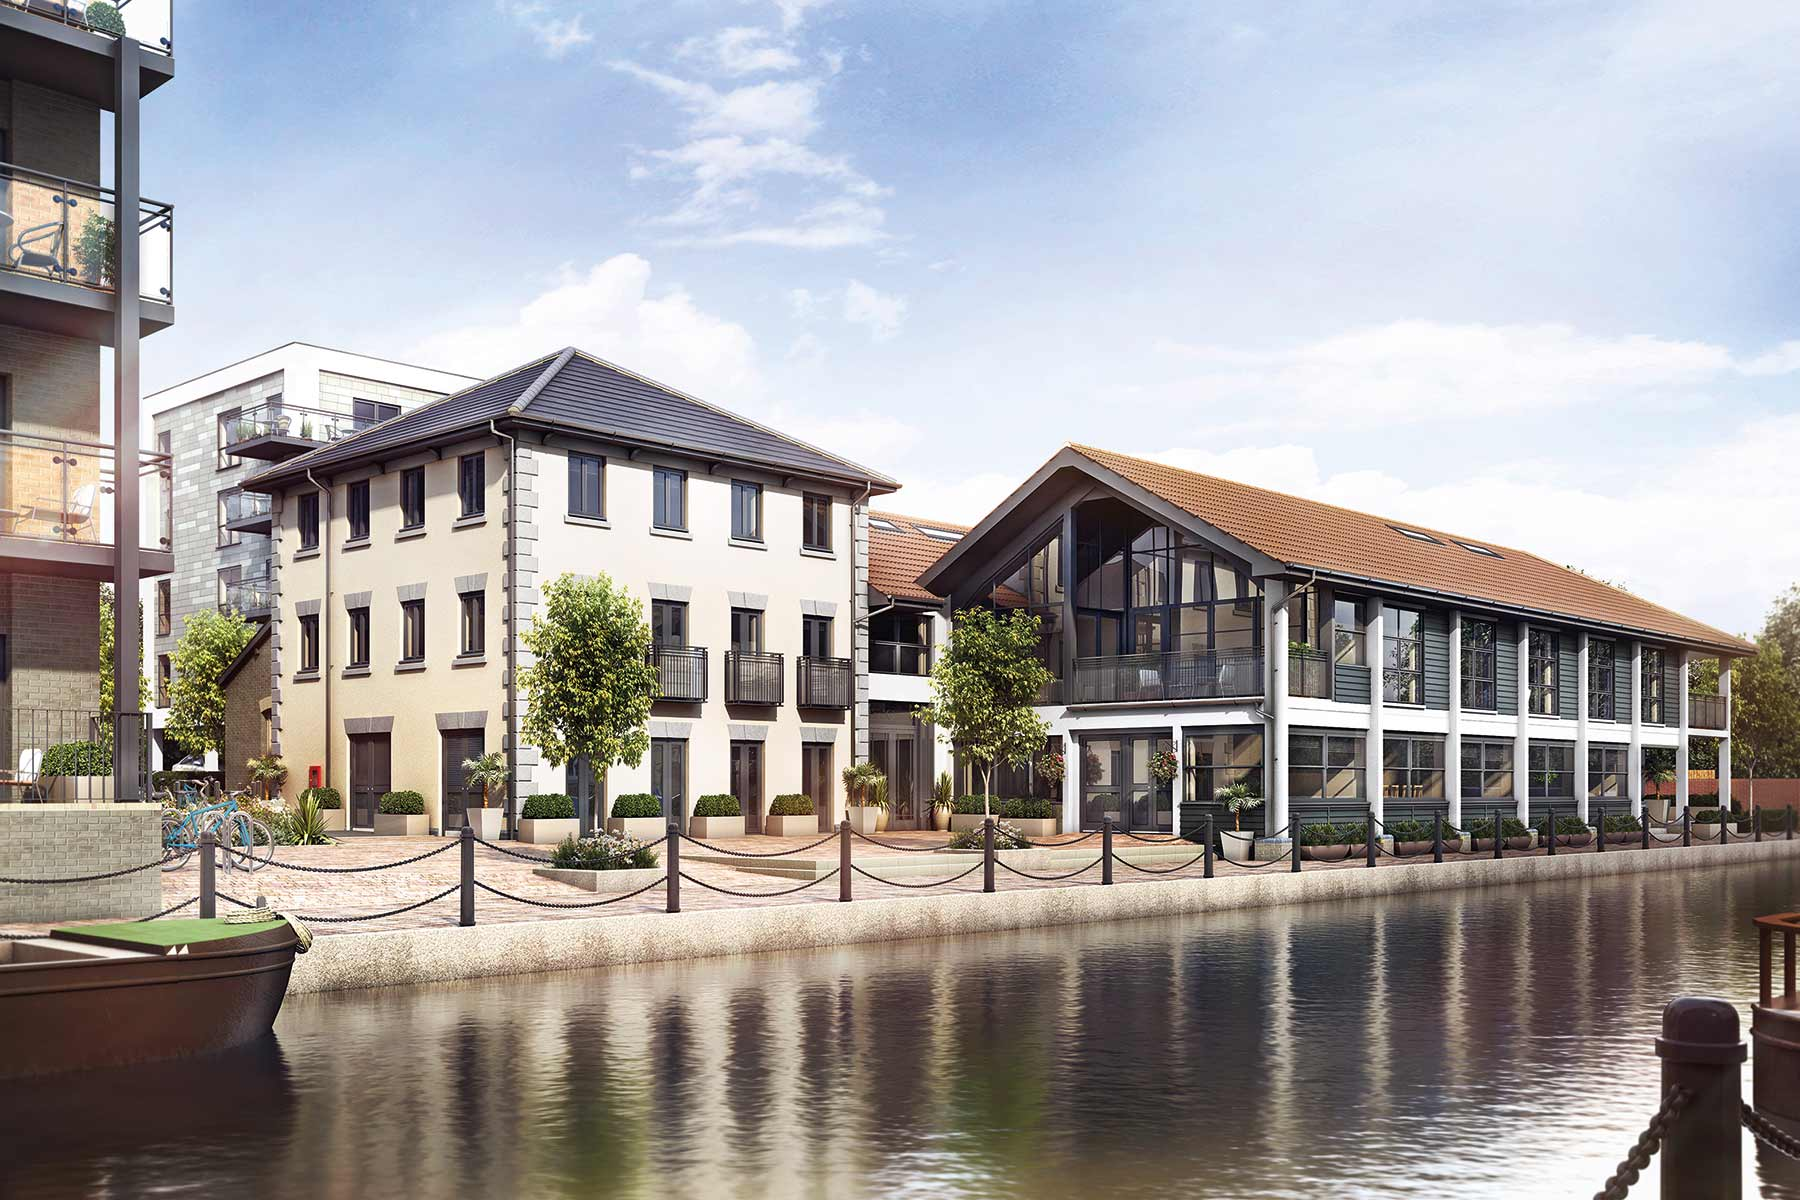 Artist impression of The Waterfront II